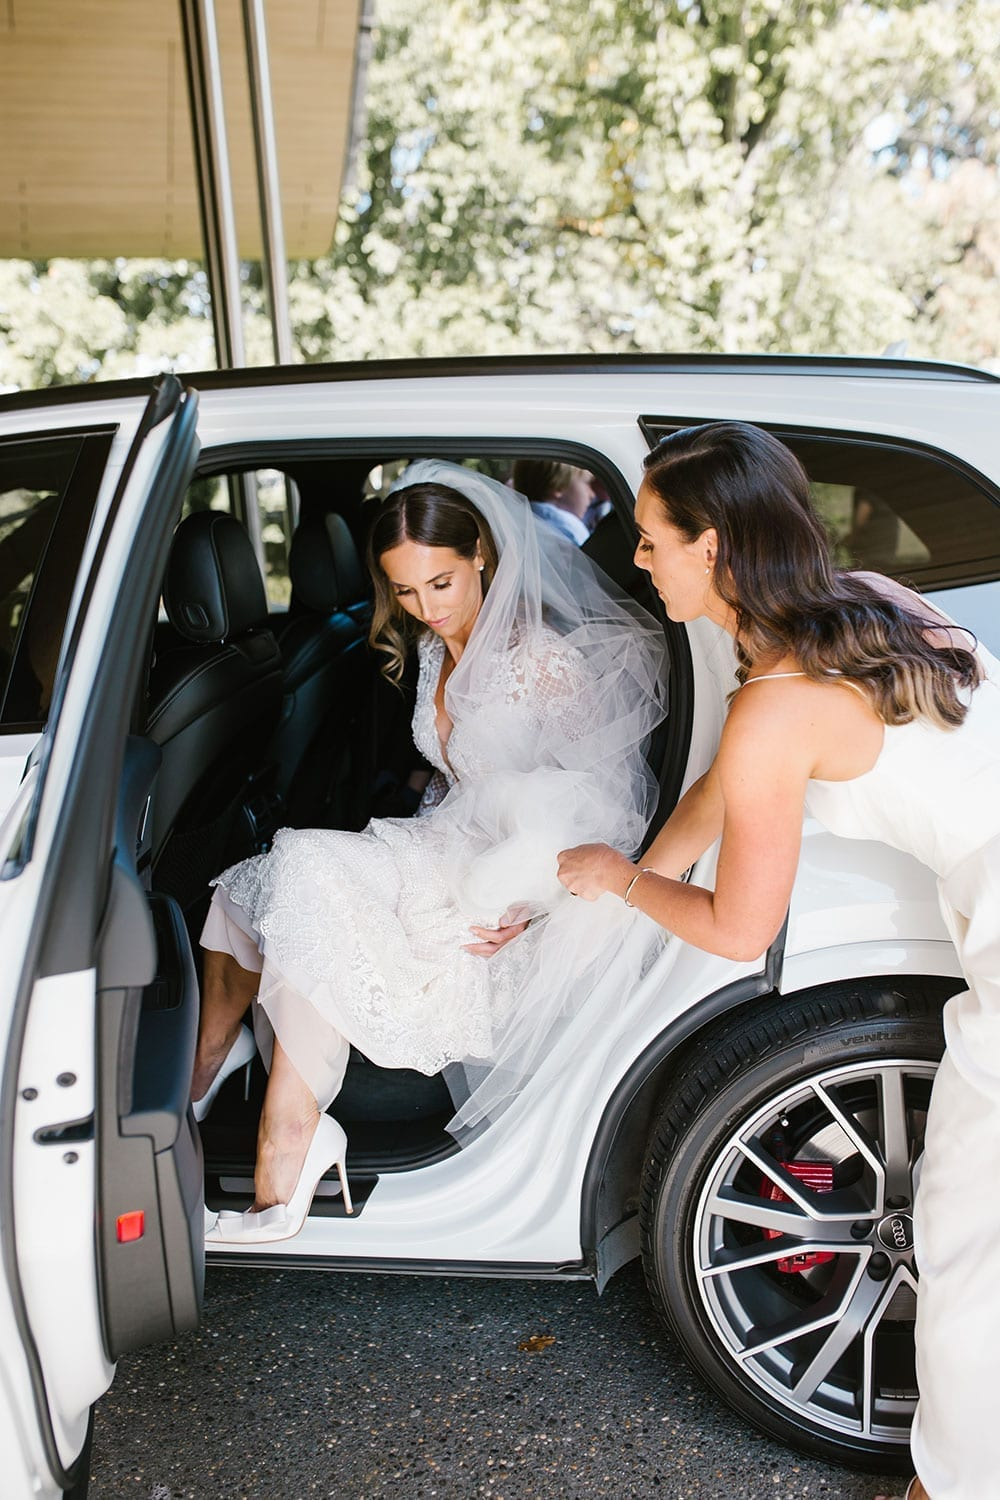 Vinka Design Features Real Weddings - Bride in bespoke fitted lace gown getting out of car